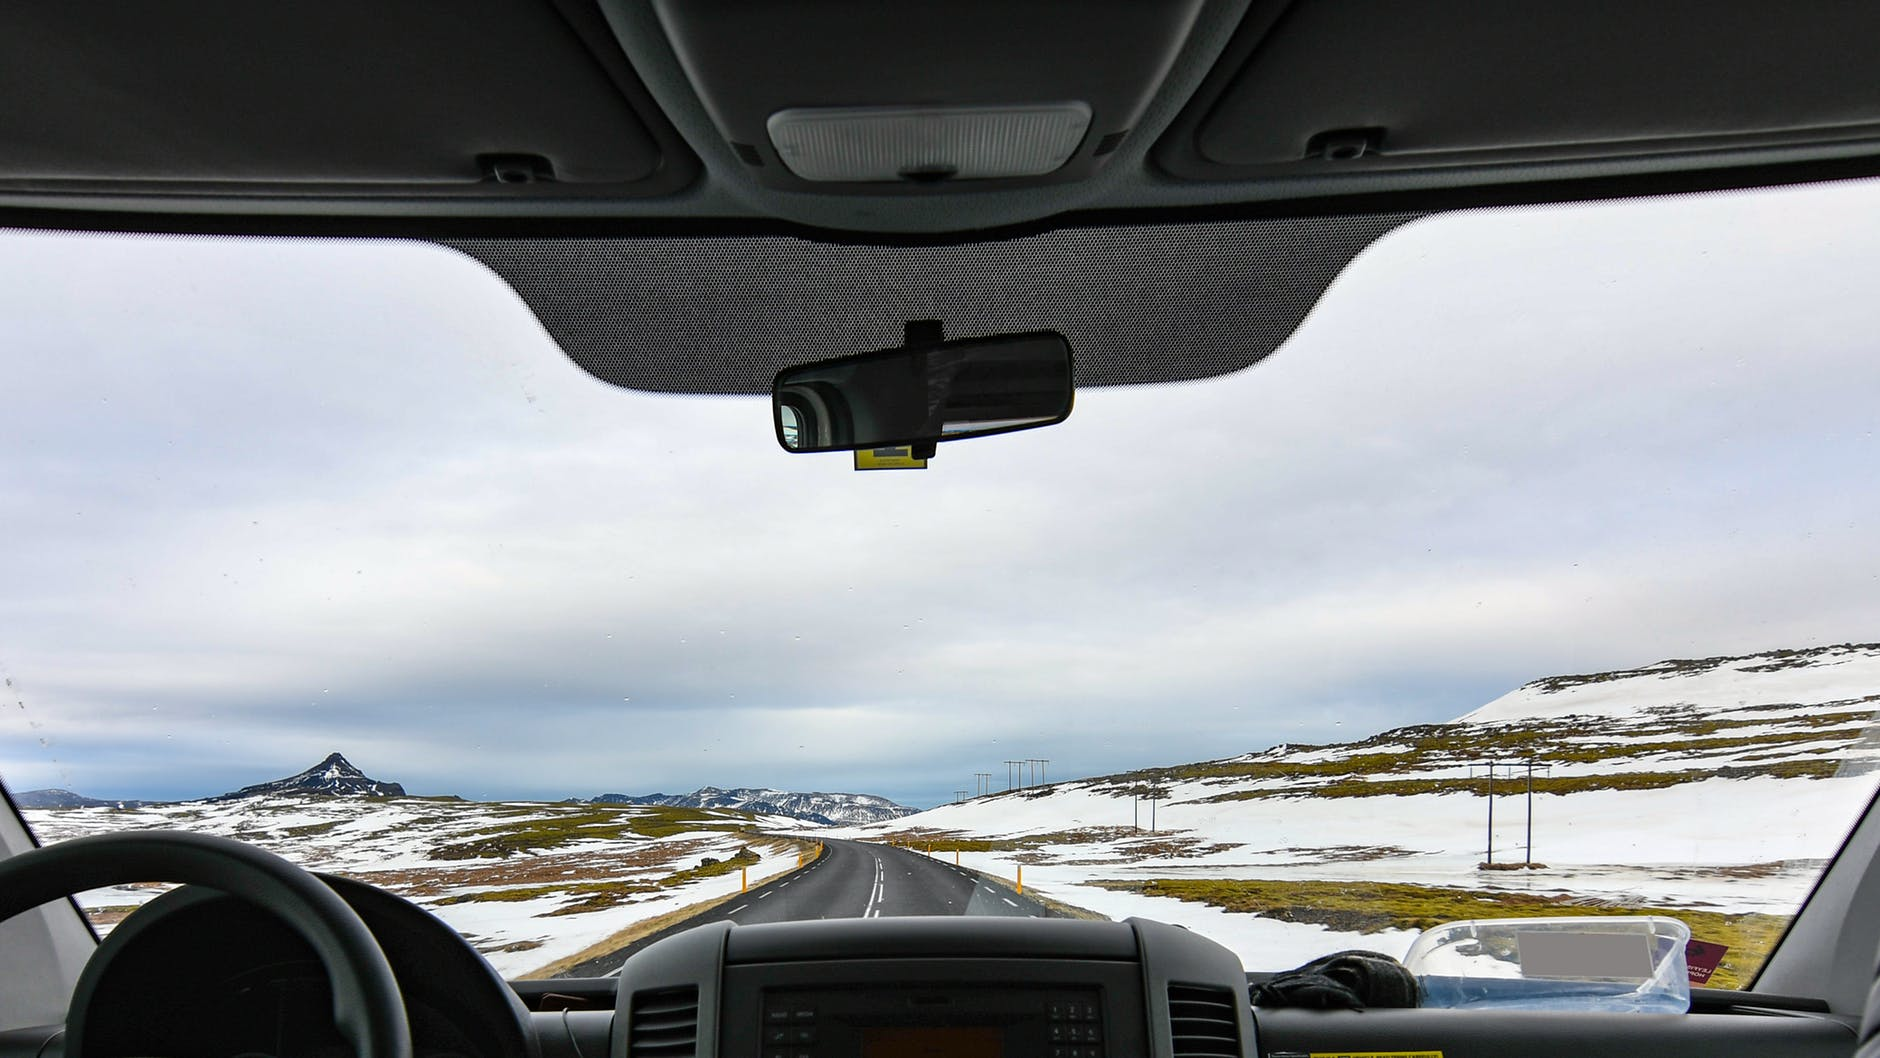 with Nicetravel guides you can learn more about Iceland even during the road trip